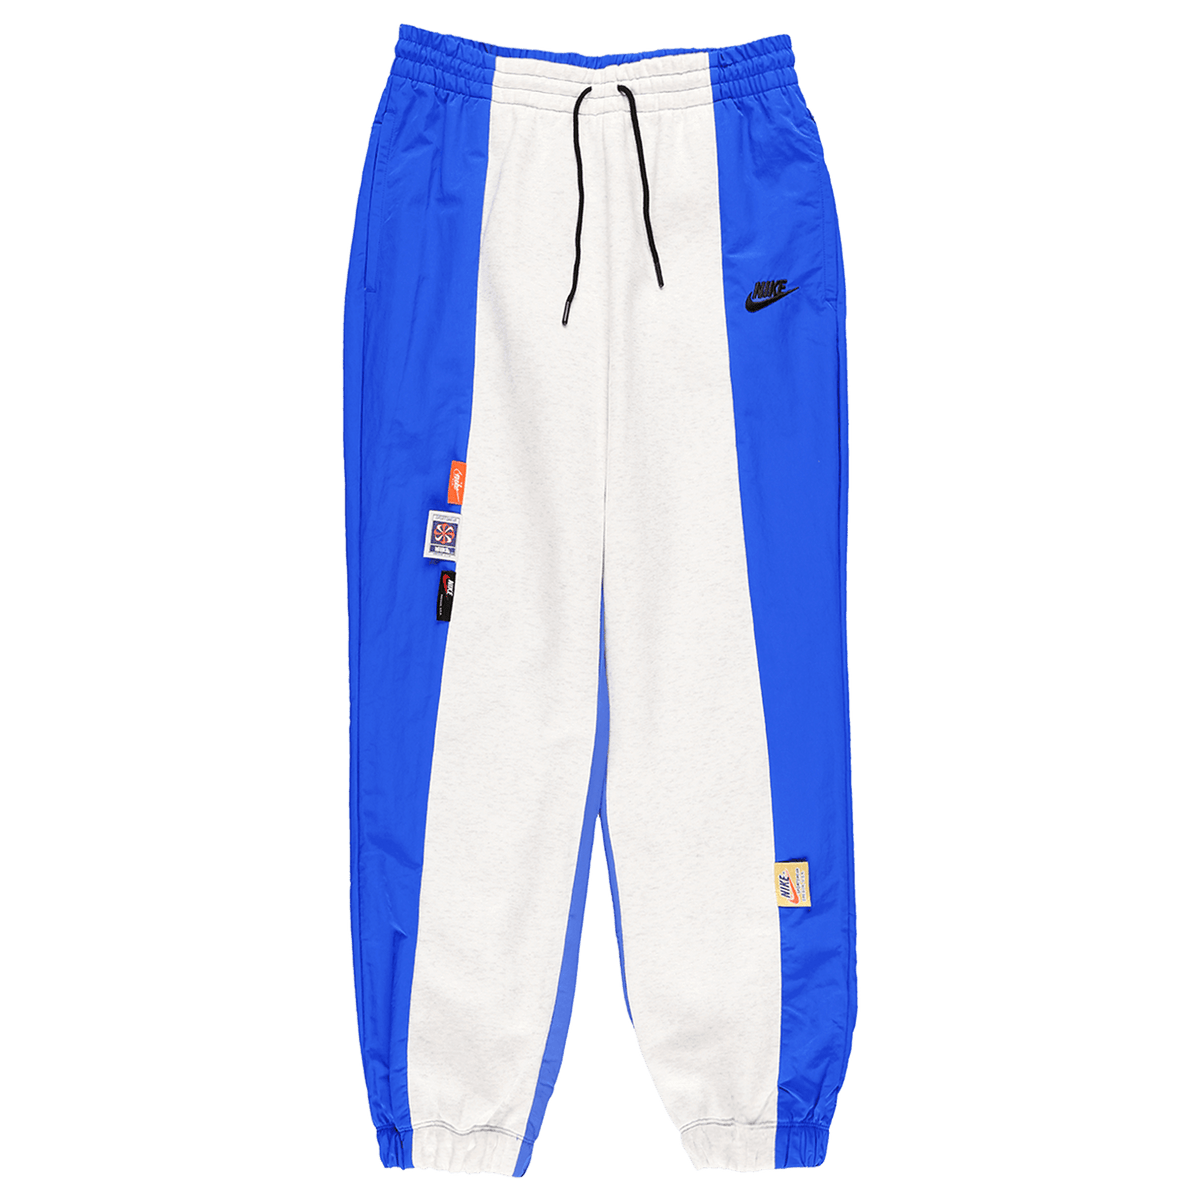 Nike Women's Power Icon Clash Pants  - XHIBITION